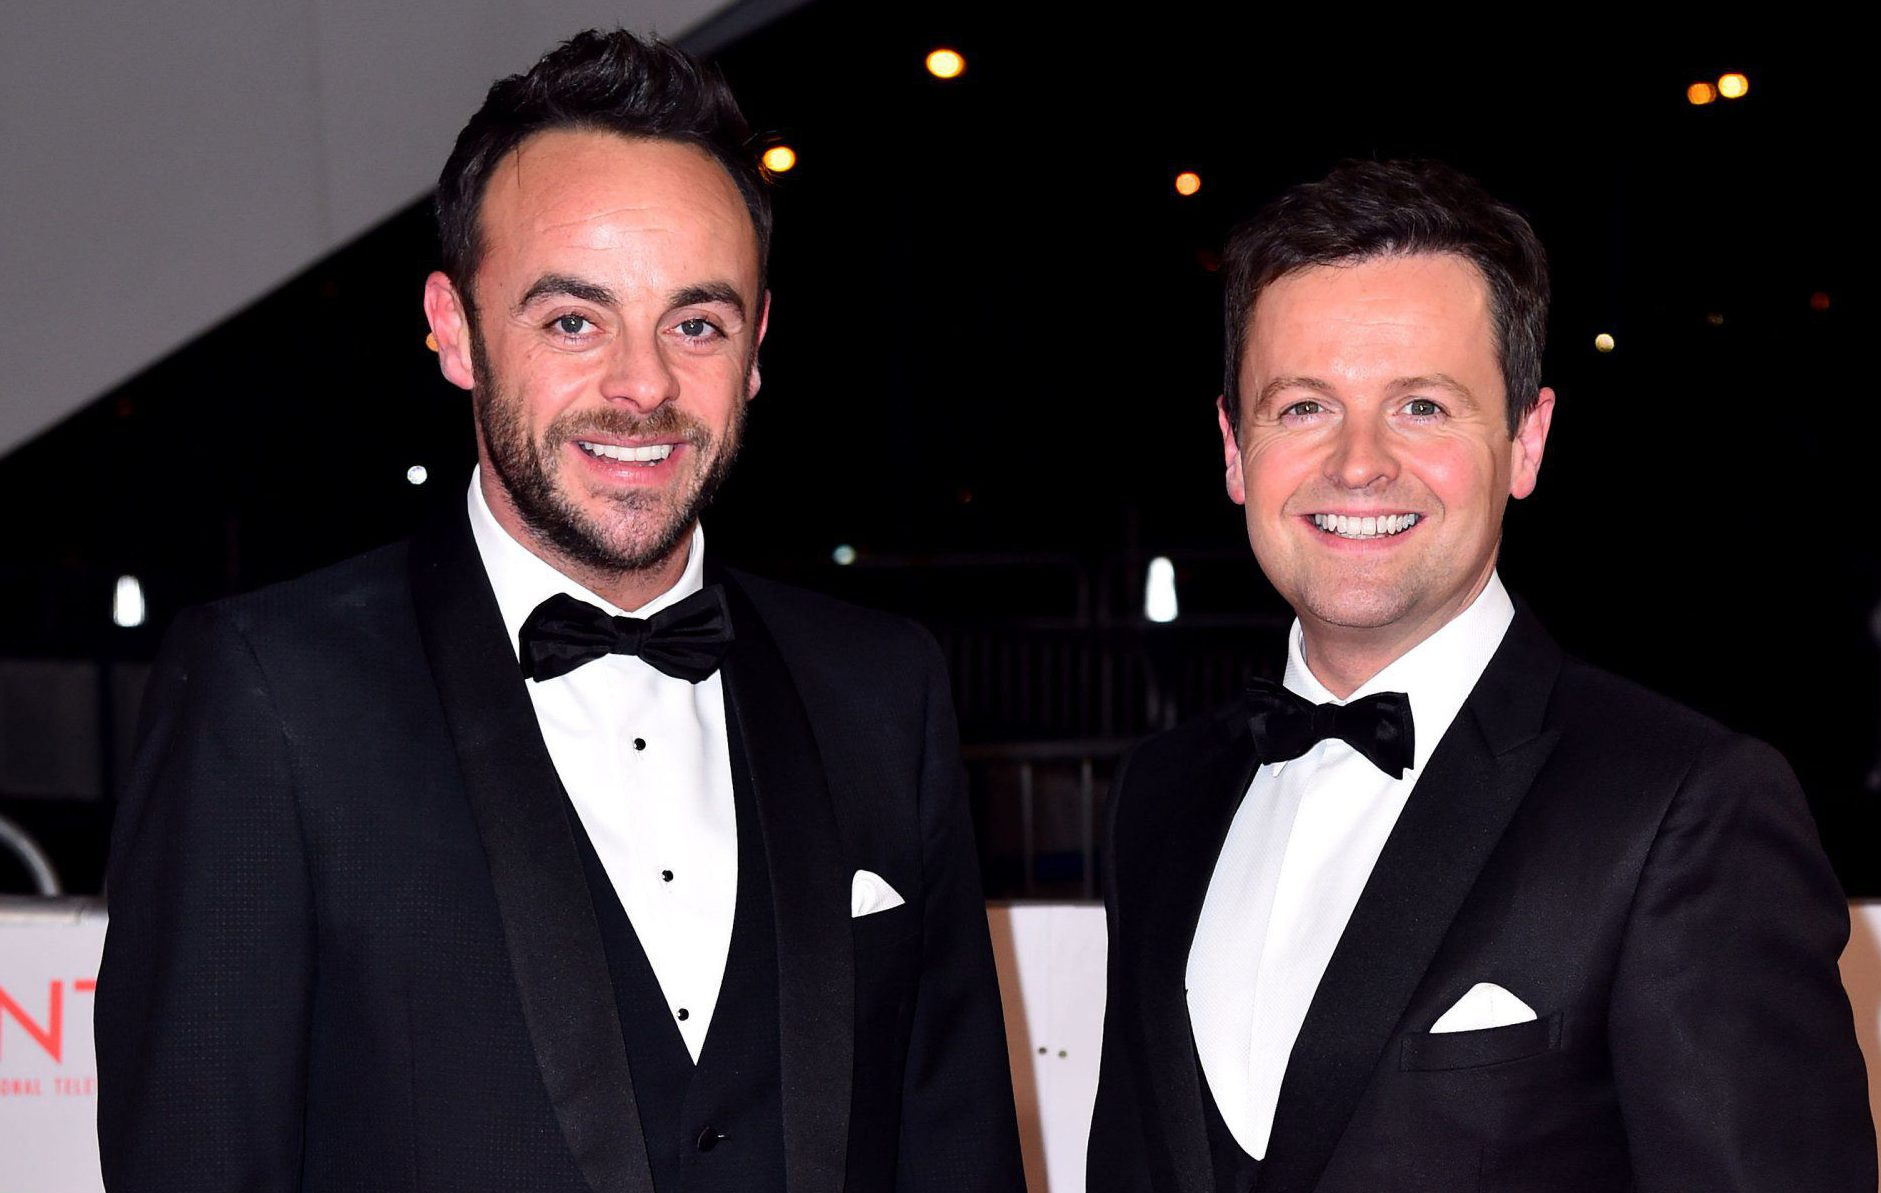 File photo dated 23/01/18 of Anthony 'Ant' McPartlin (left) and Declan 'Dec' Donnelly (right), who have admitted they still fear their surprises will fail as they prepare to celebrate the 100th episode of Saturday Night Takeaway. PRESS ASSOCIATION Photo. Issue date: Tuesday February 27, 2018. The duo, Anthony McPartlin and Declan Donnelly, have been hosting the popular ITV variety show since 2002 and their 100th instalment airs on Saturday night. See PA story SHOWBIZ AntDec. Photo credit should read: Matt Crossick/PA Wire